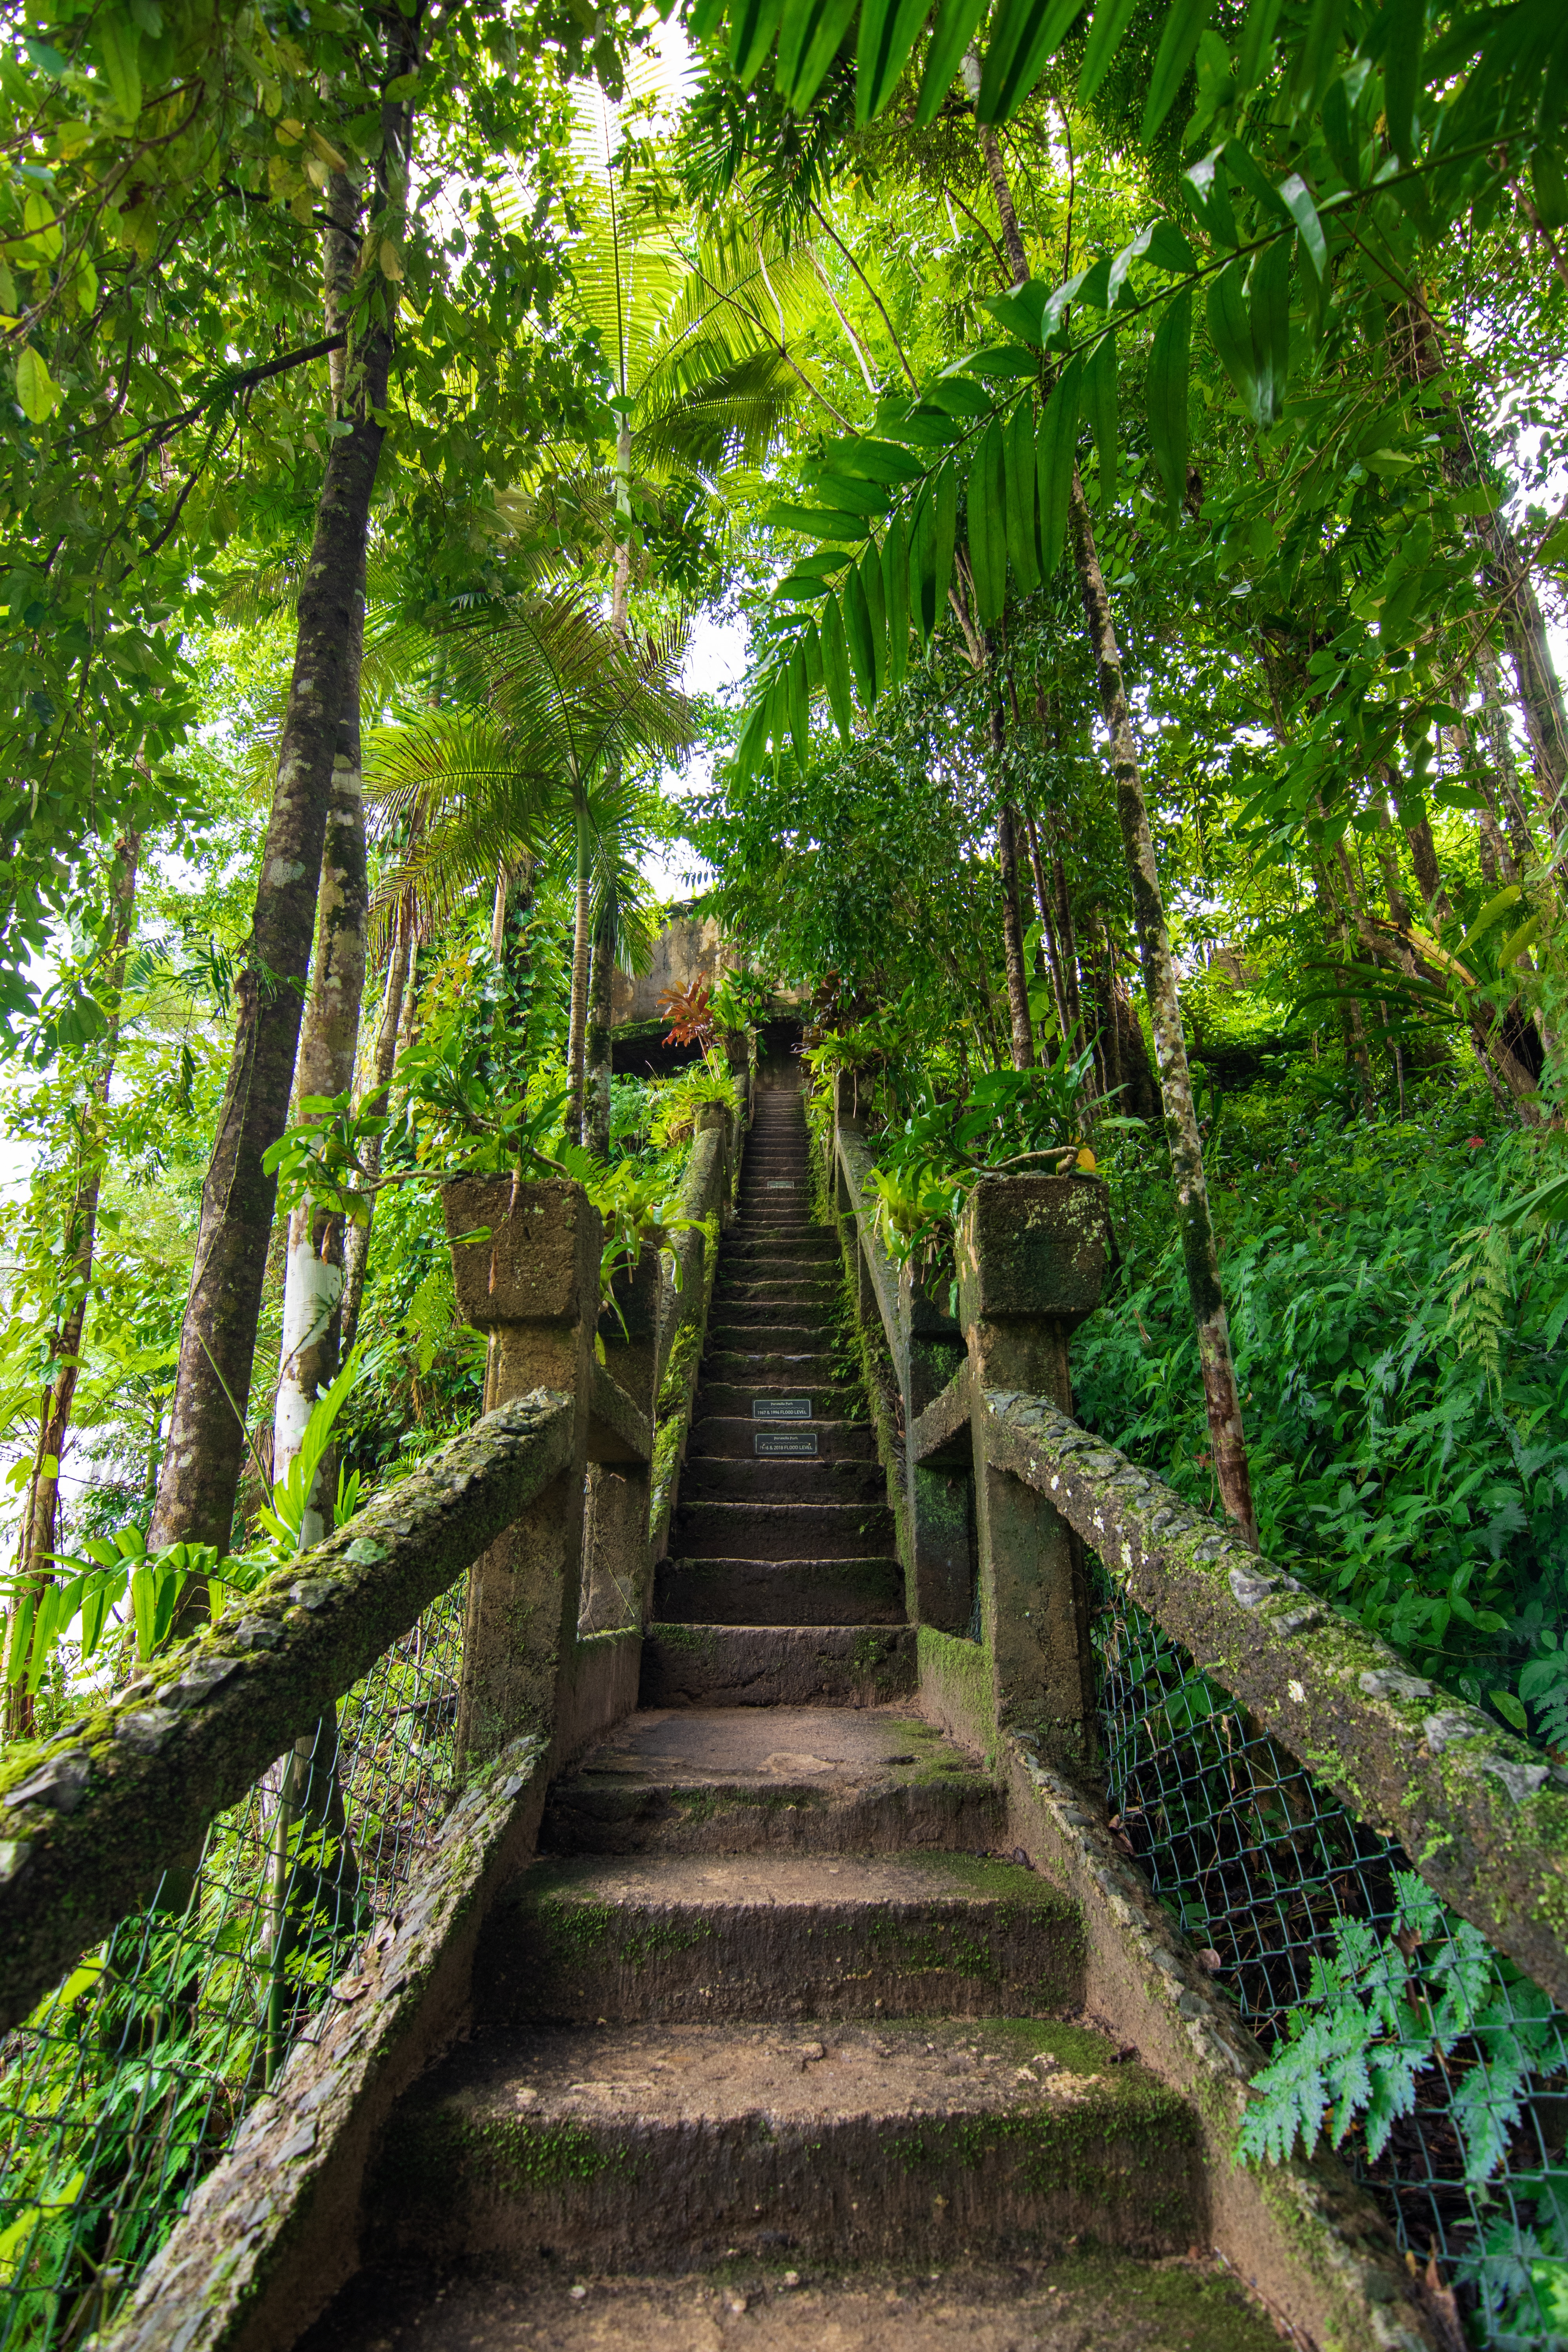 The Grand Staircase at Paronella Park in the rainforest